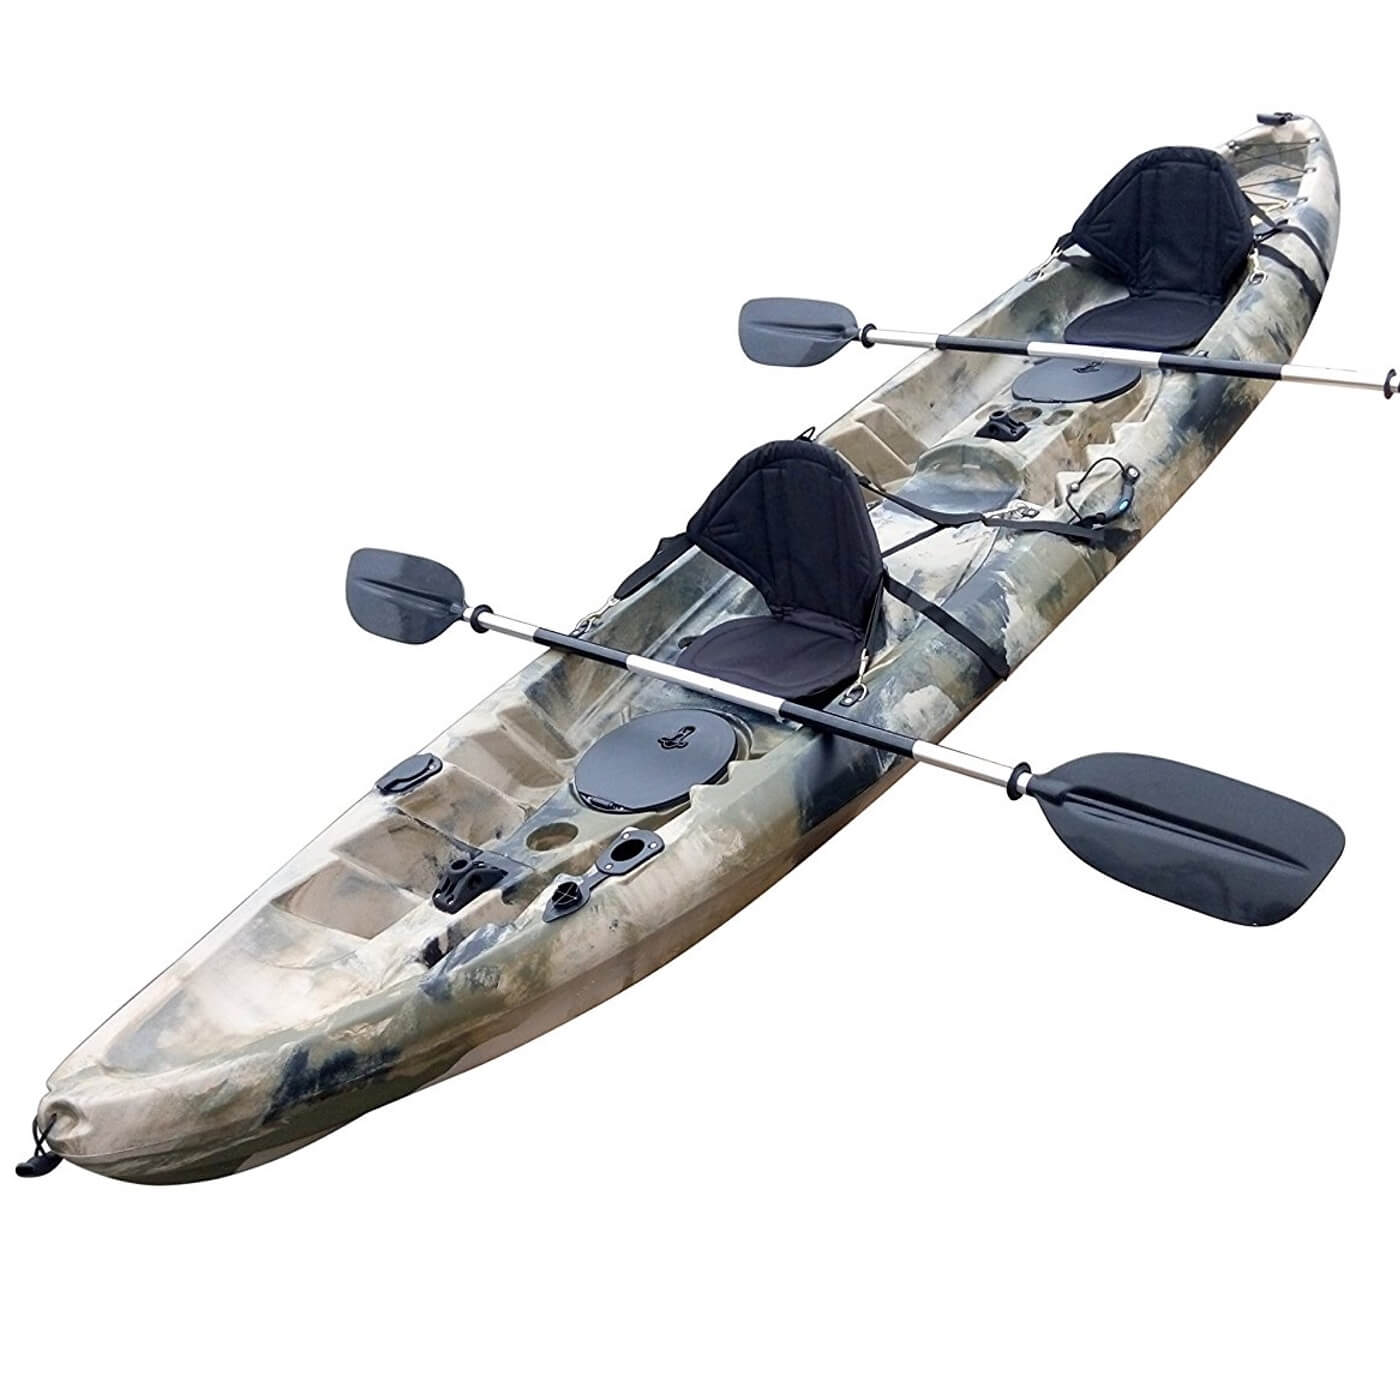 BKC UH-TK219 tandem fishing kayak review